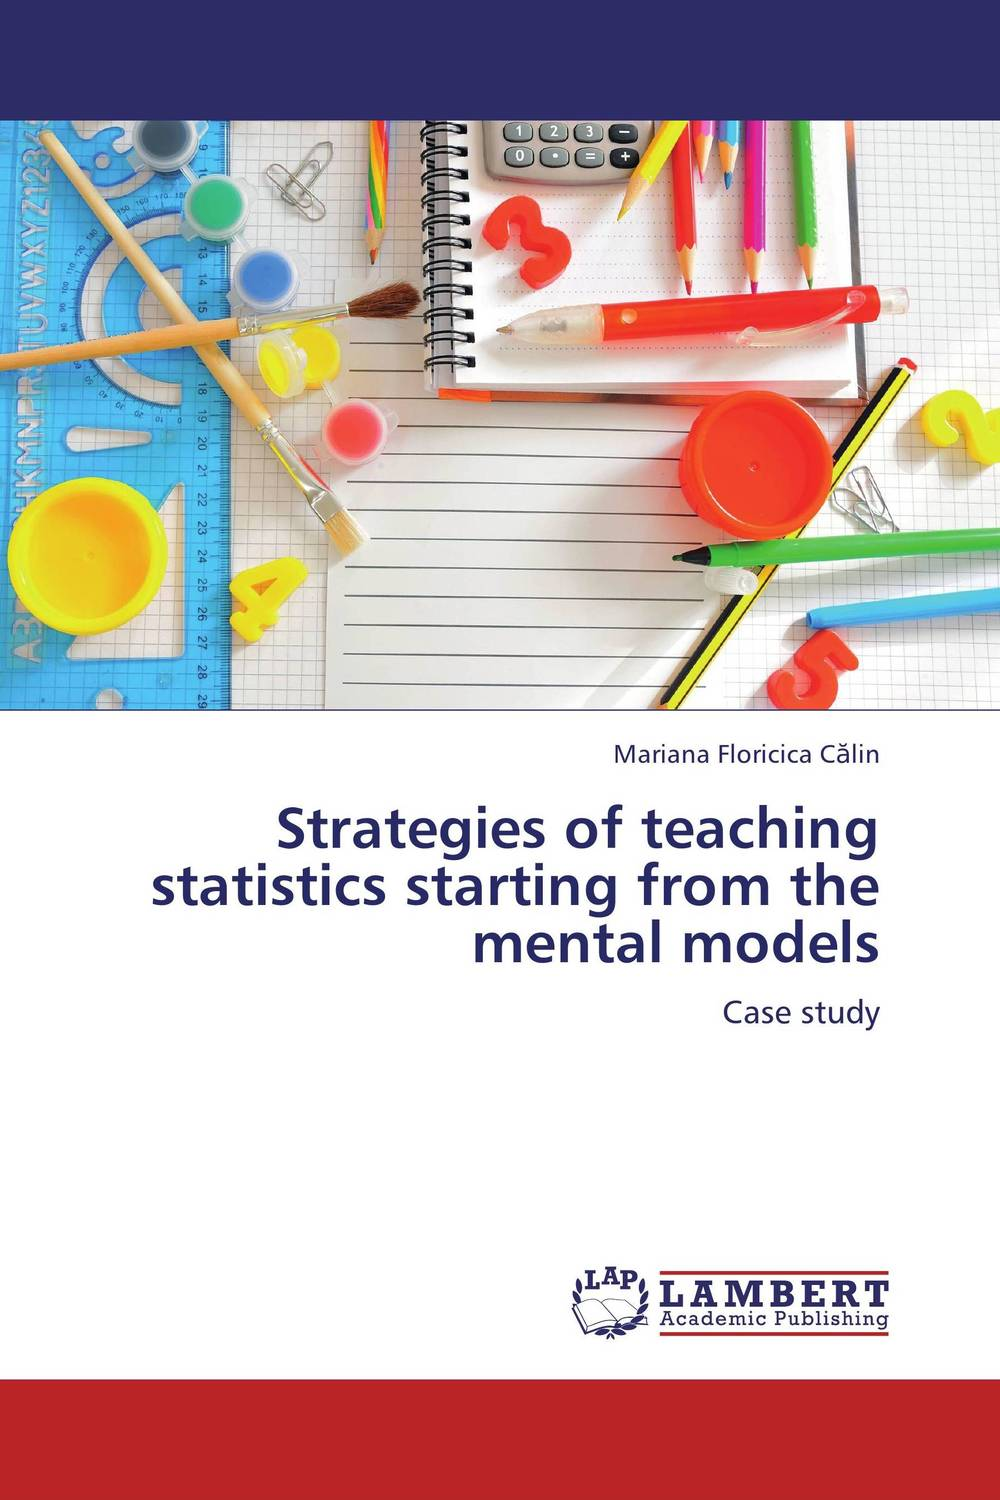 Strategies of teaching statistics starting from the mental models